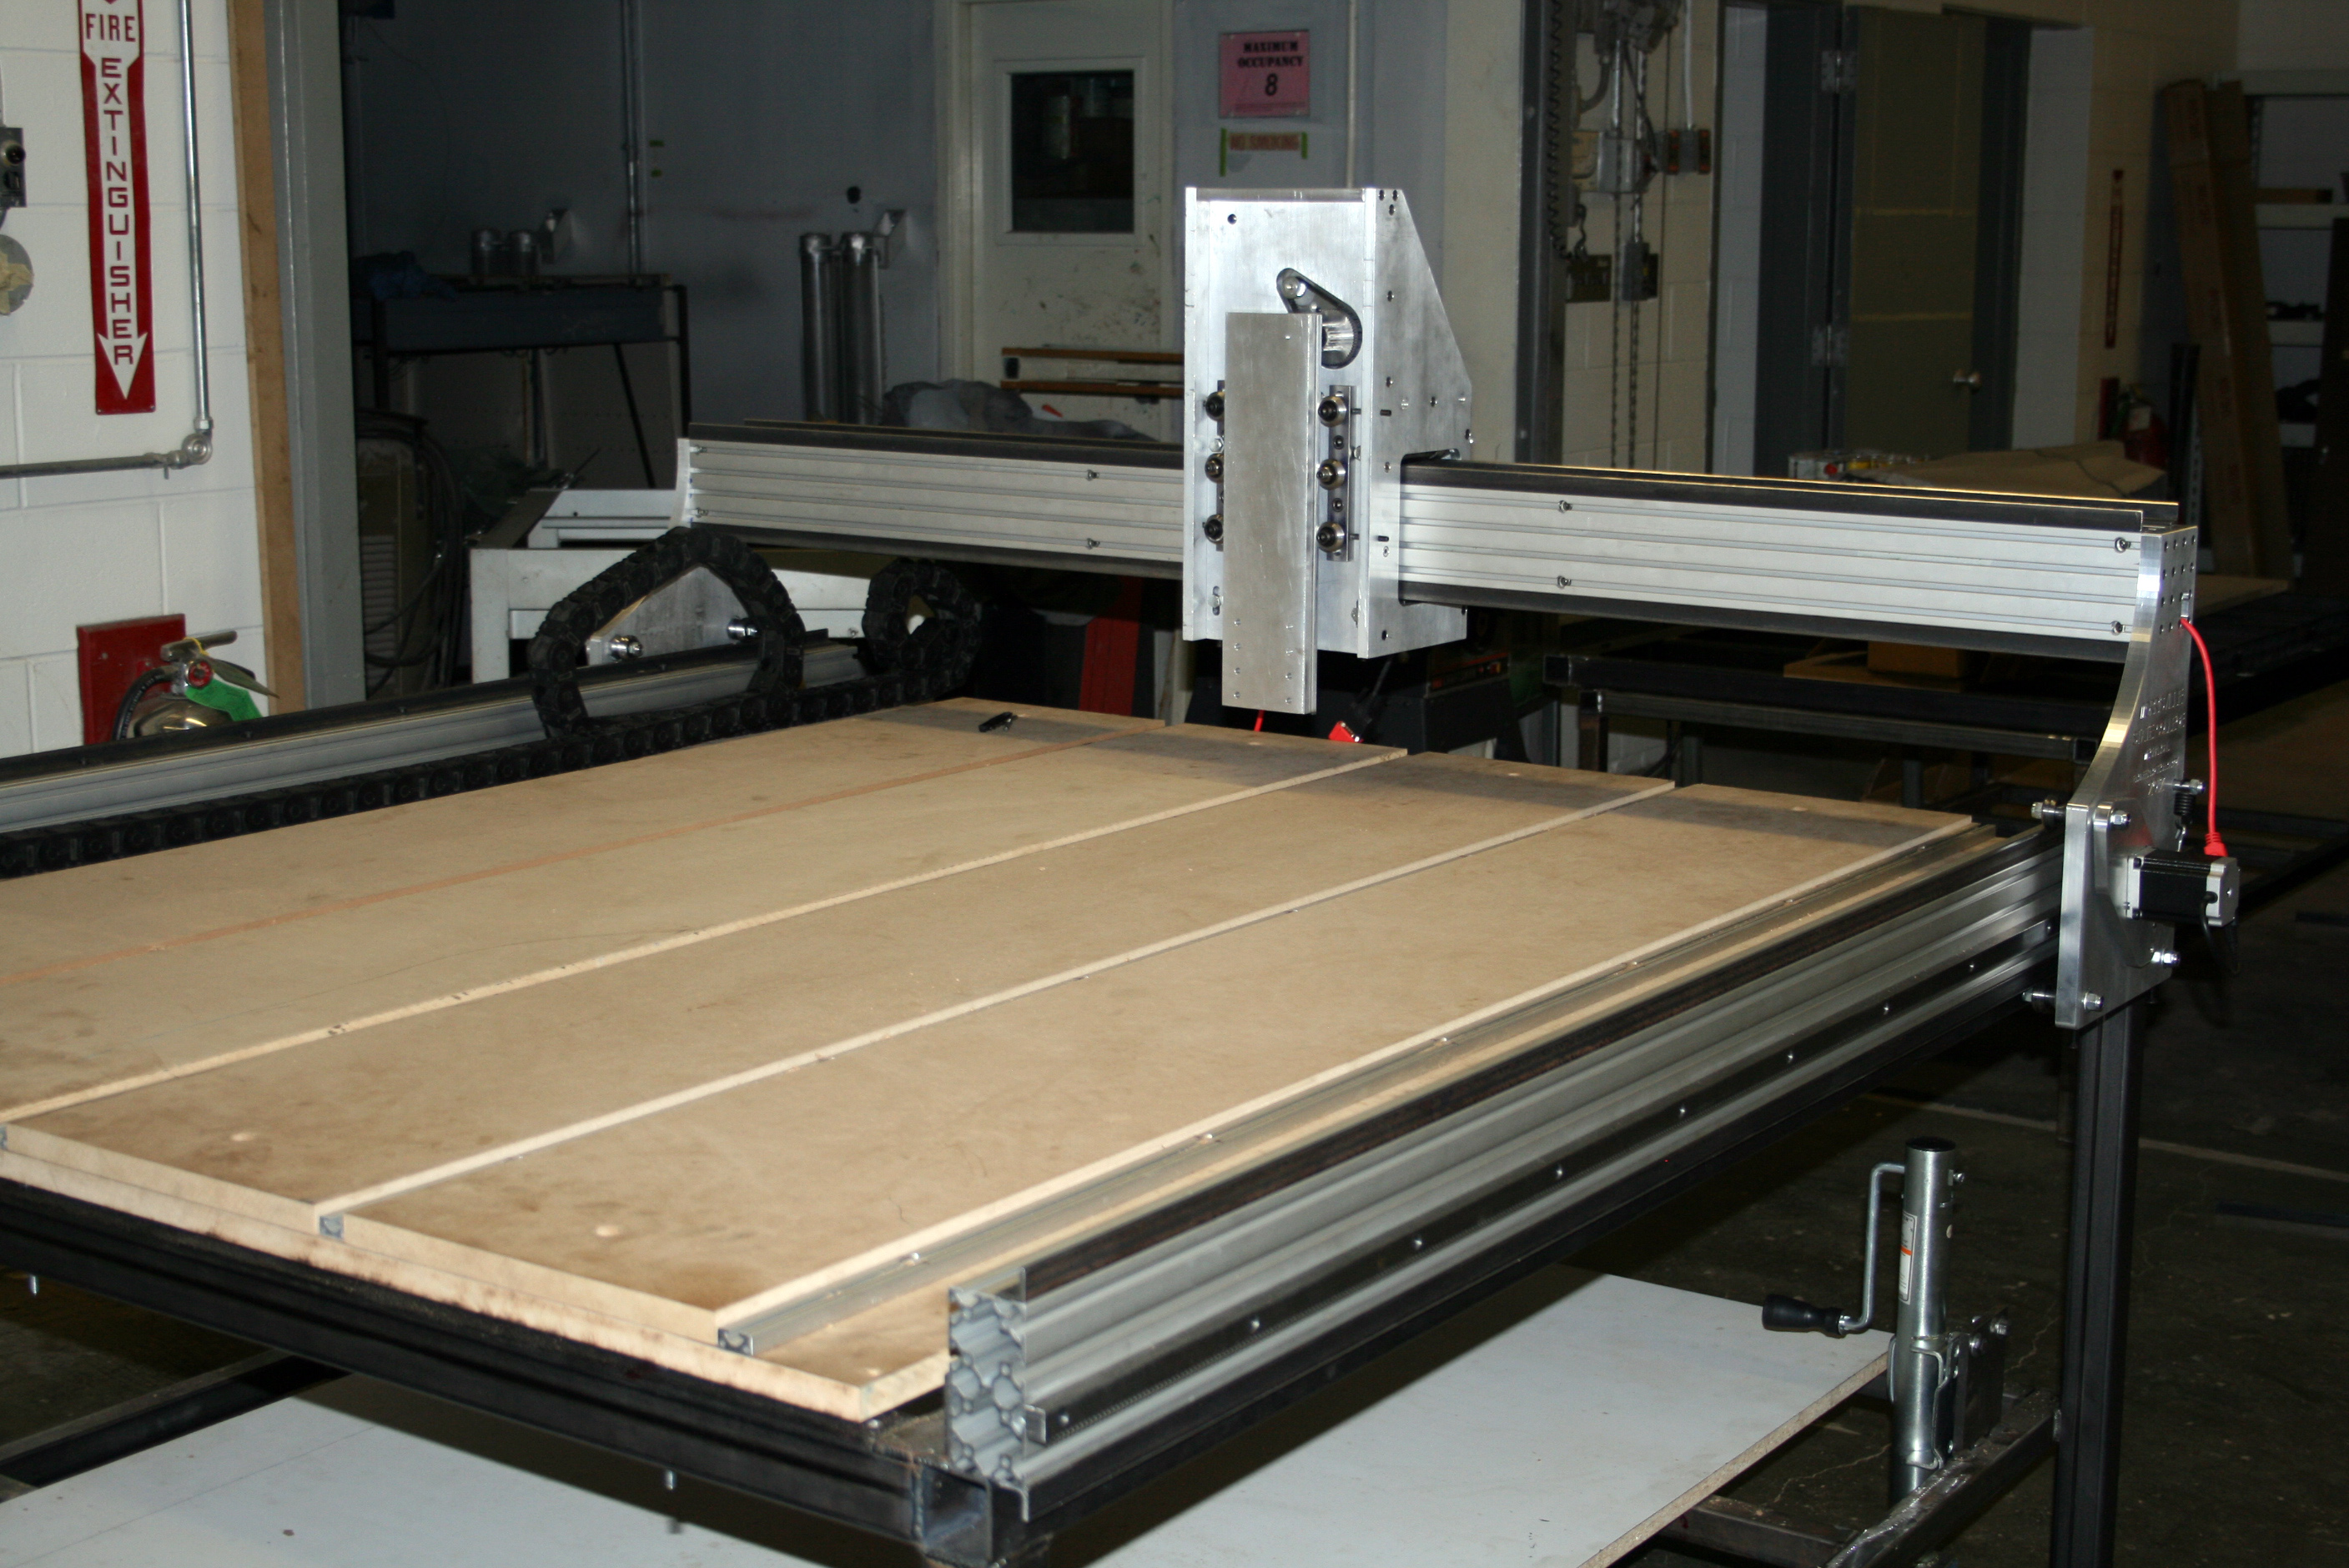 ... plans motors were from heat content cnc router table plans free